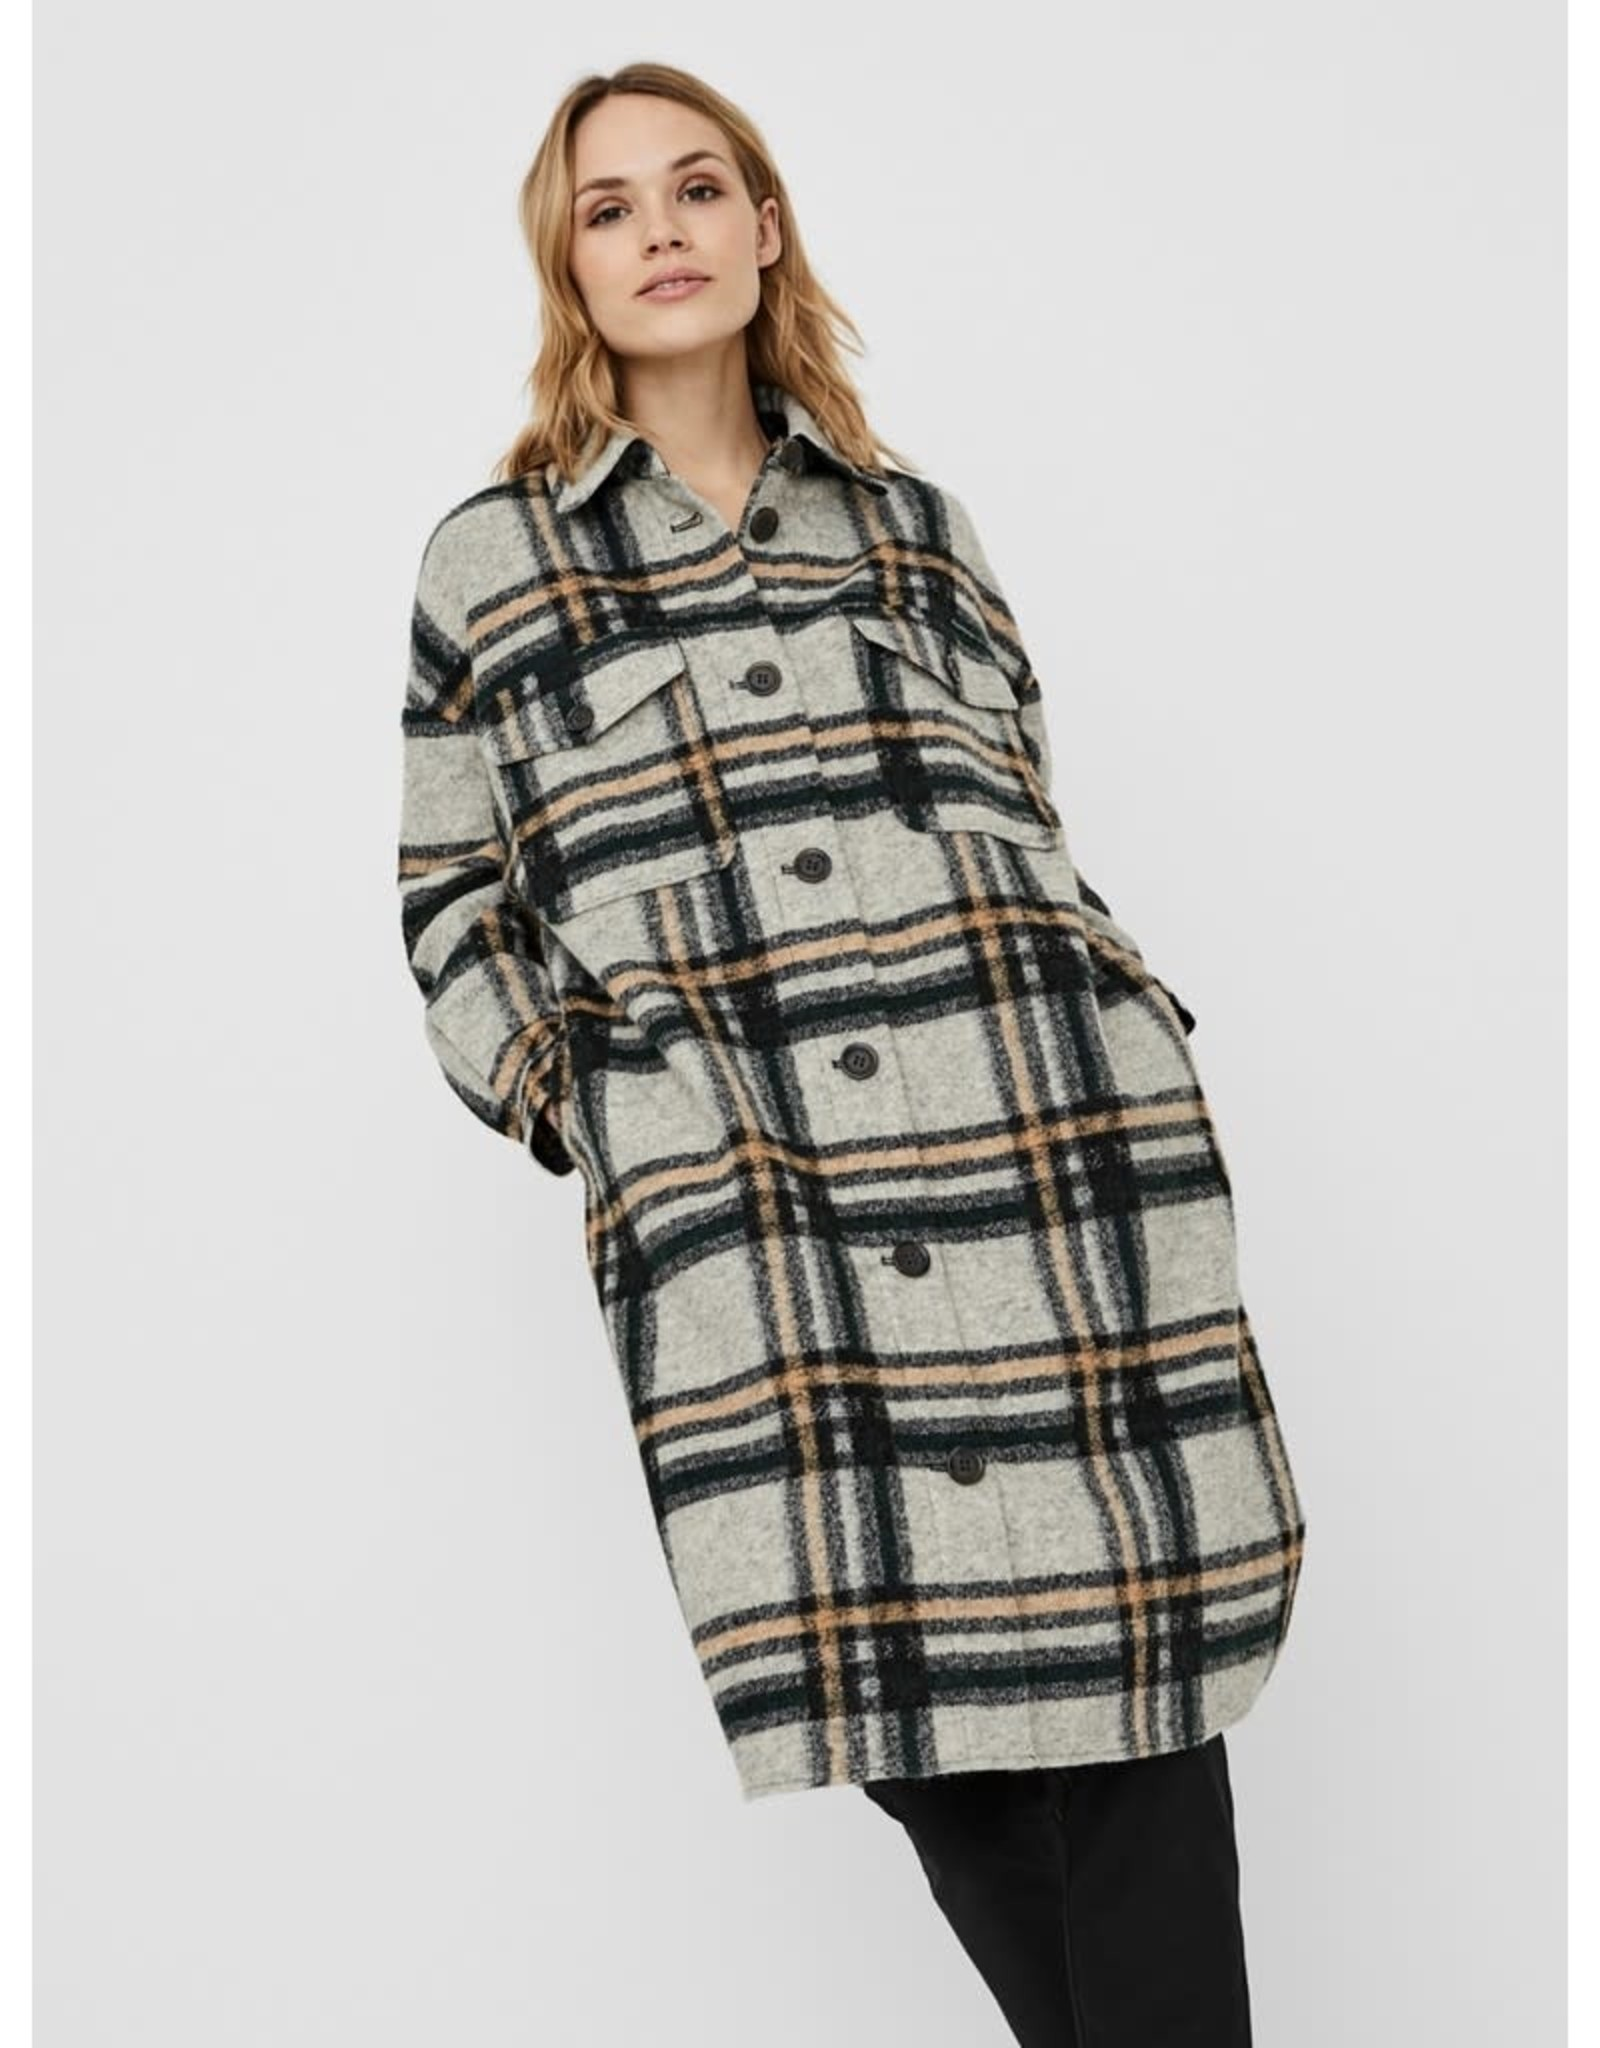 Vero Moda Chrissie Plaid Shacket